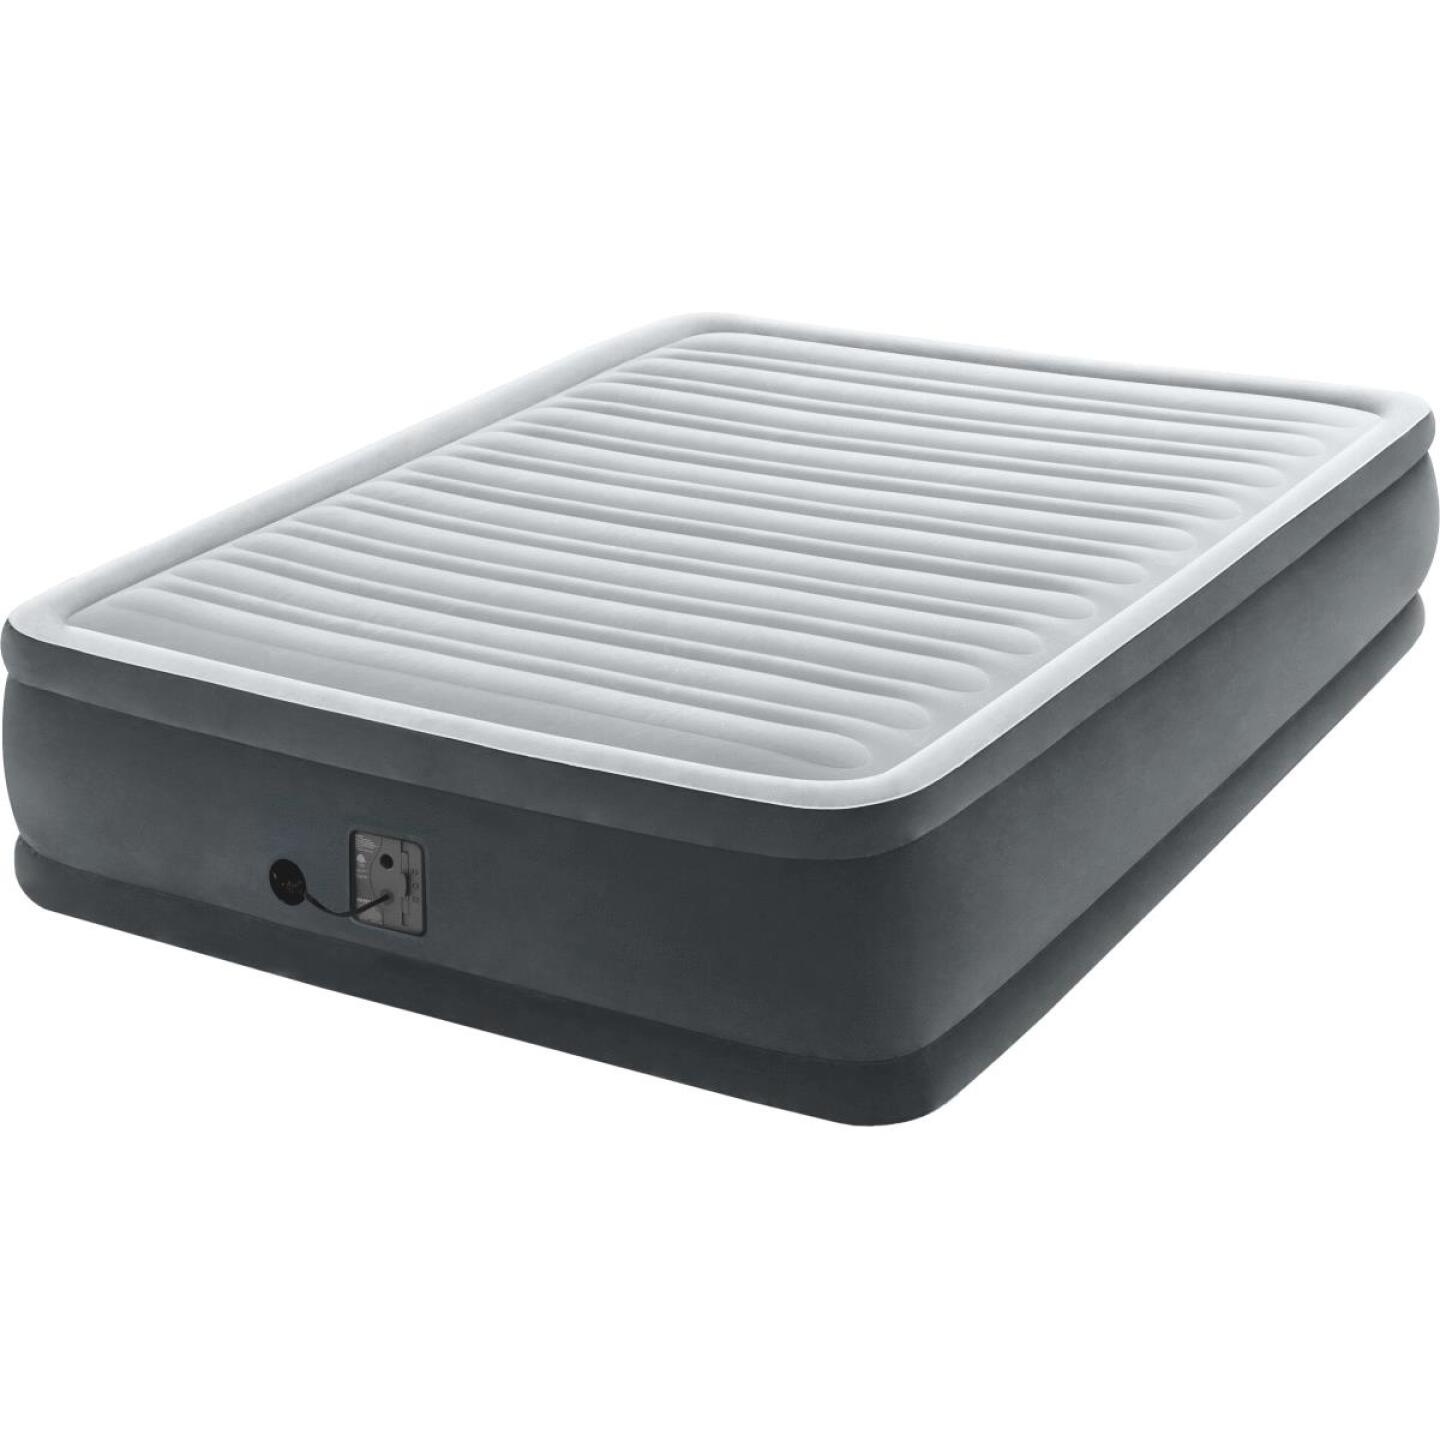 Intex Queen Size Air Mattress with Built-In Electric Pump Image 1